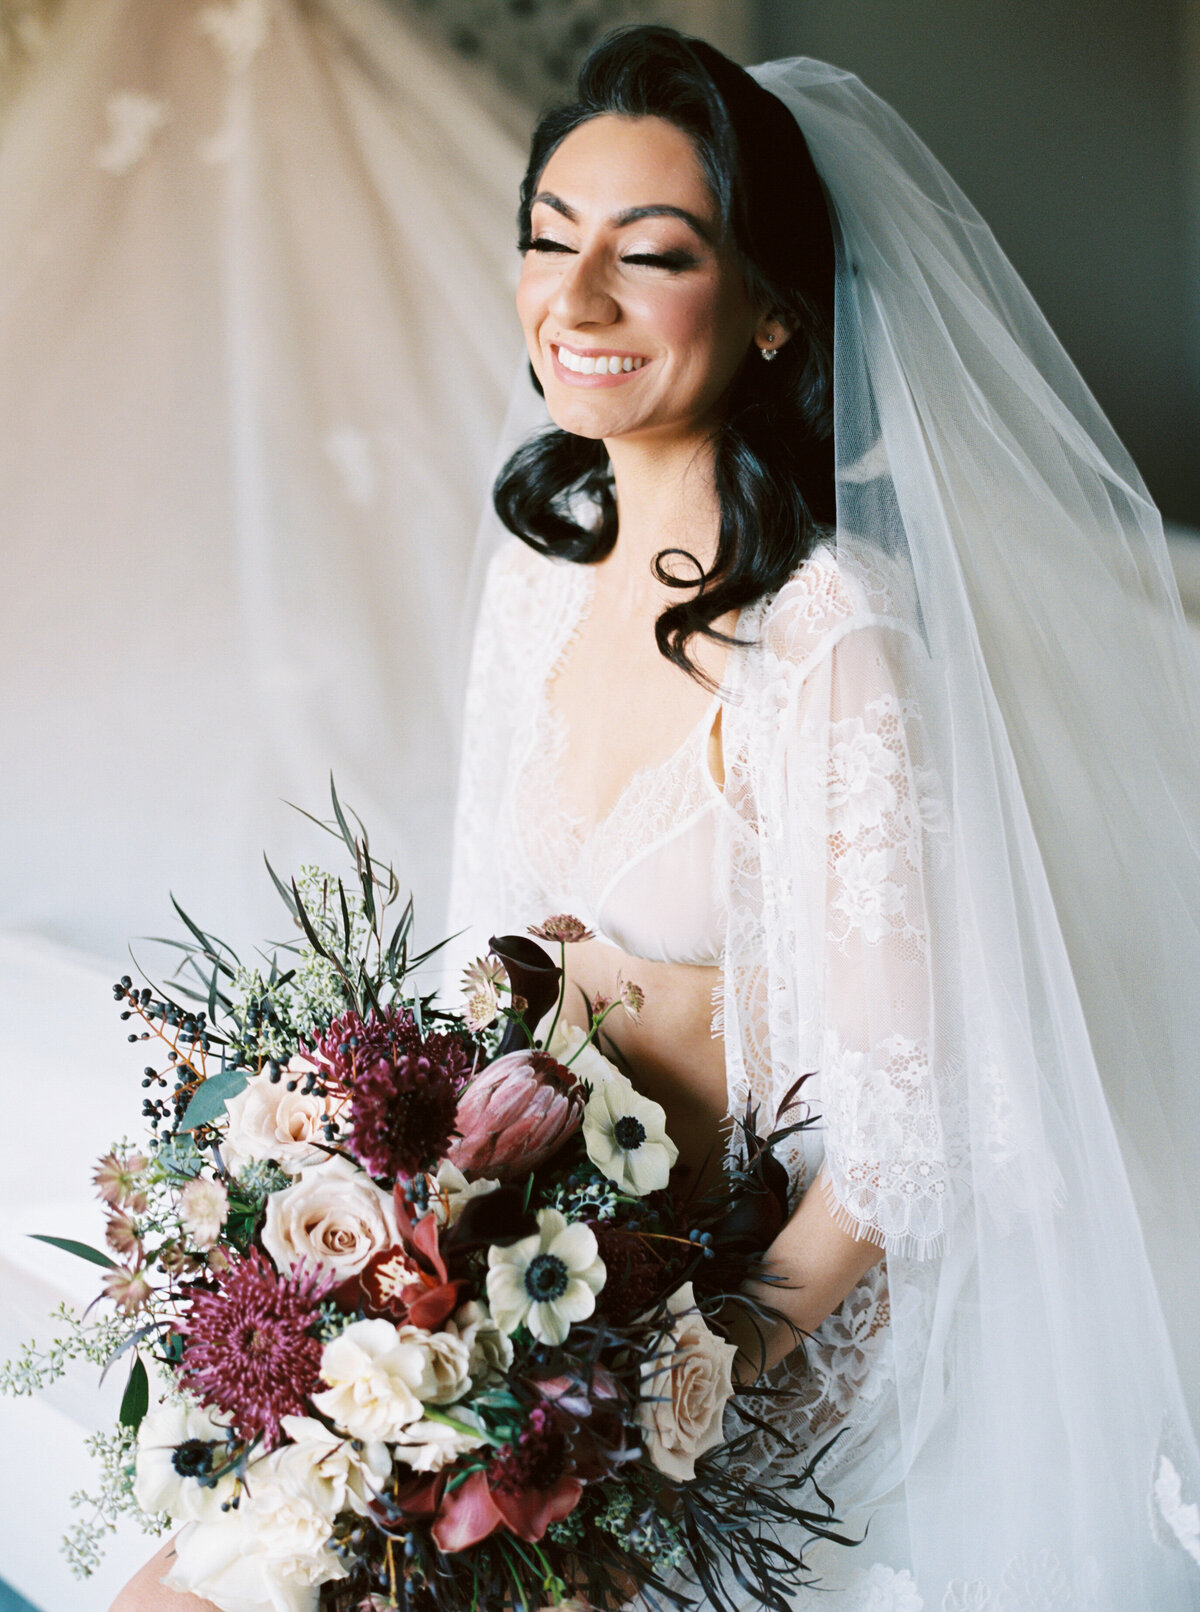 Kaylea Moreno_wedding gallery - Rami-Cassandra-Wedding-krmorenophoto-58